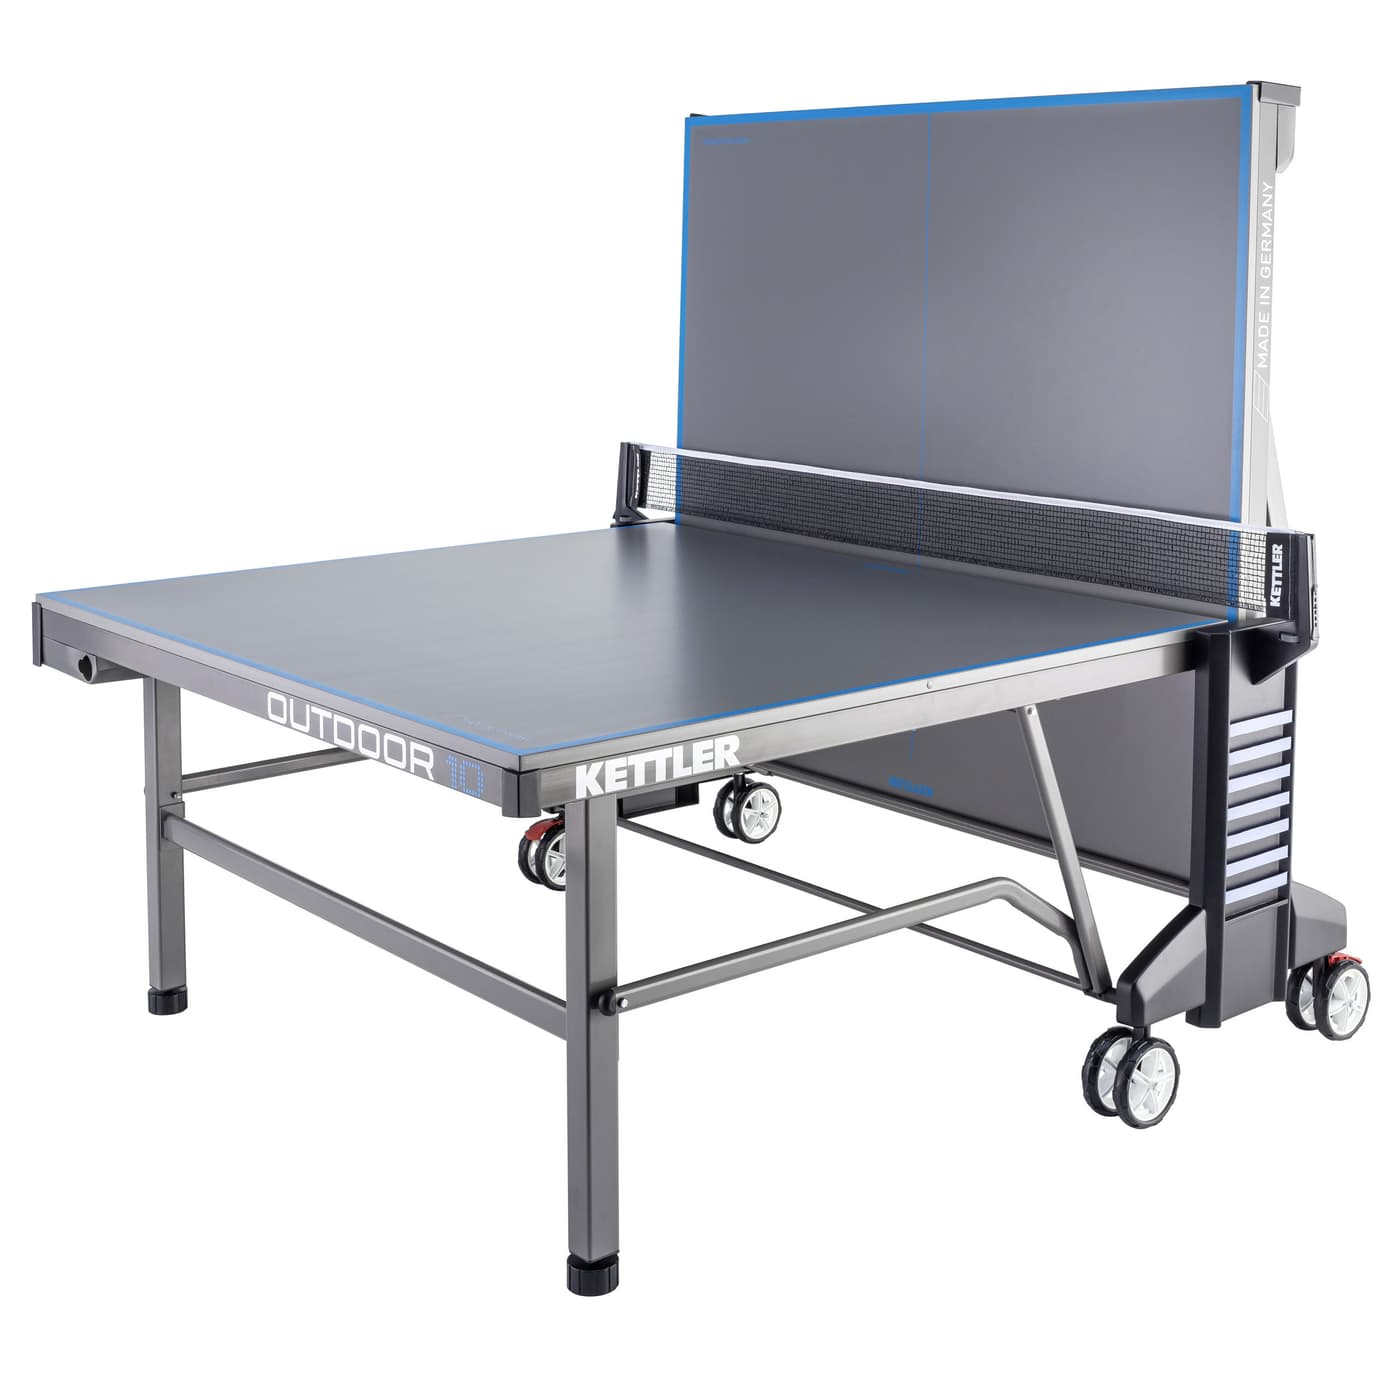 Kettler Outdoor 10 Table de tennis de table   Migros de8cbc70f583